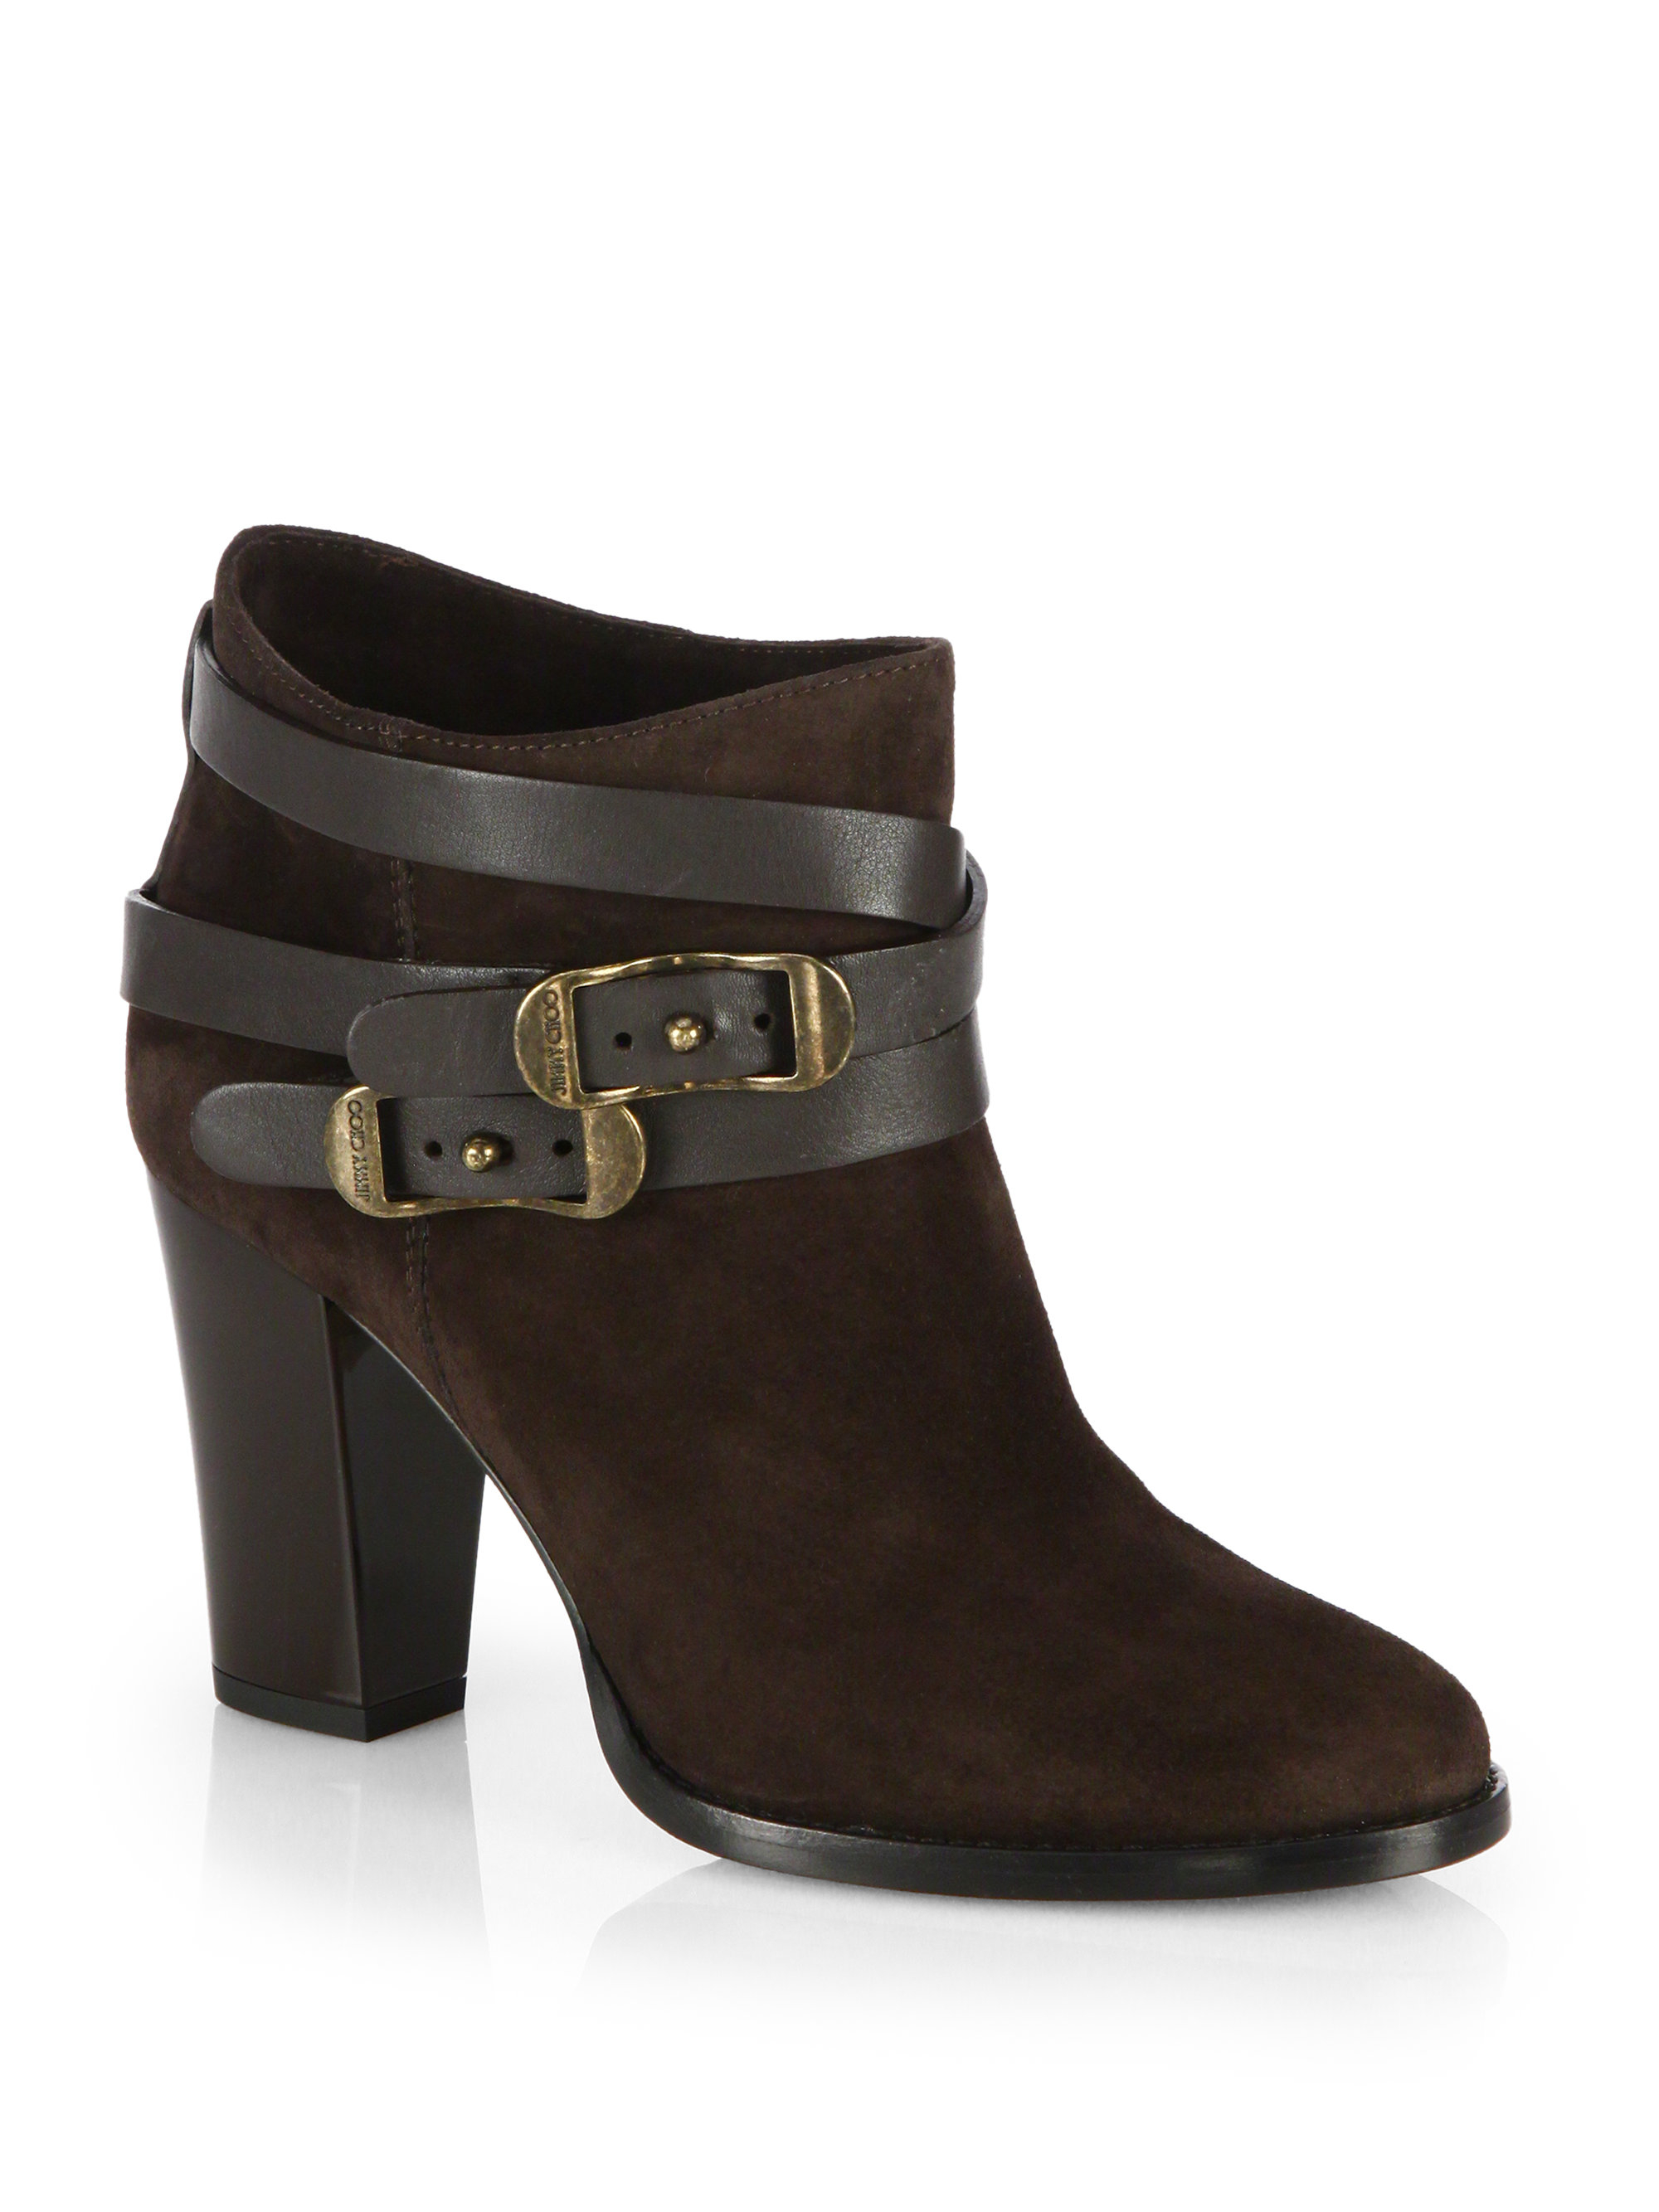 Lyst - Jimmy Choo Melba Suede Buckle Ankle Boots in Black